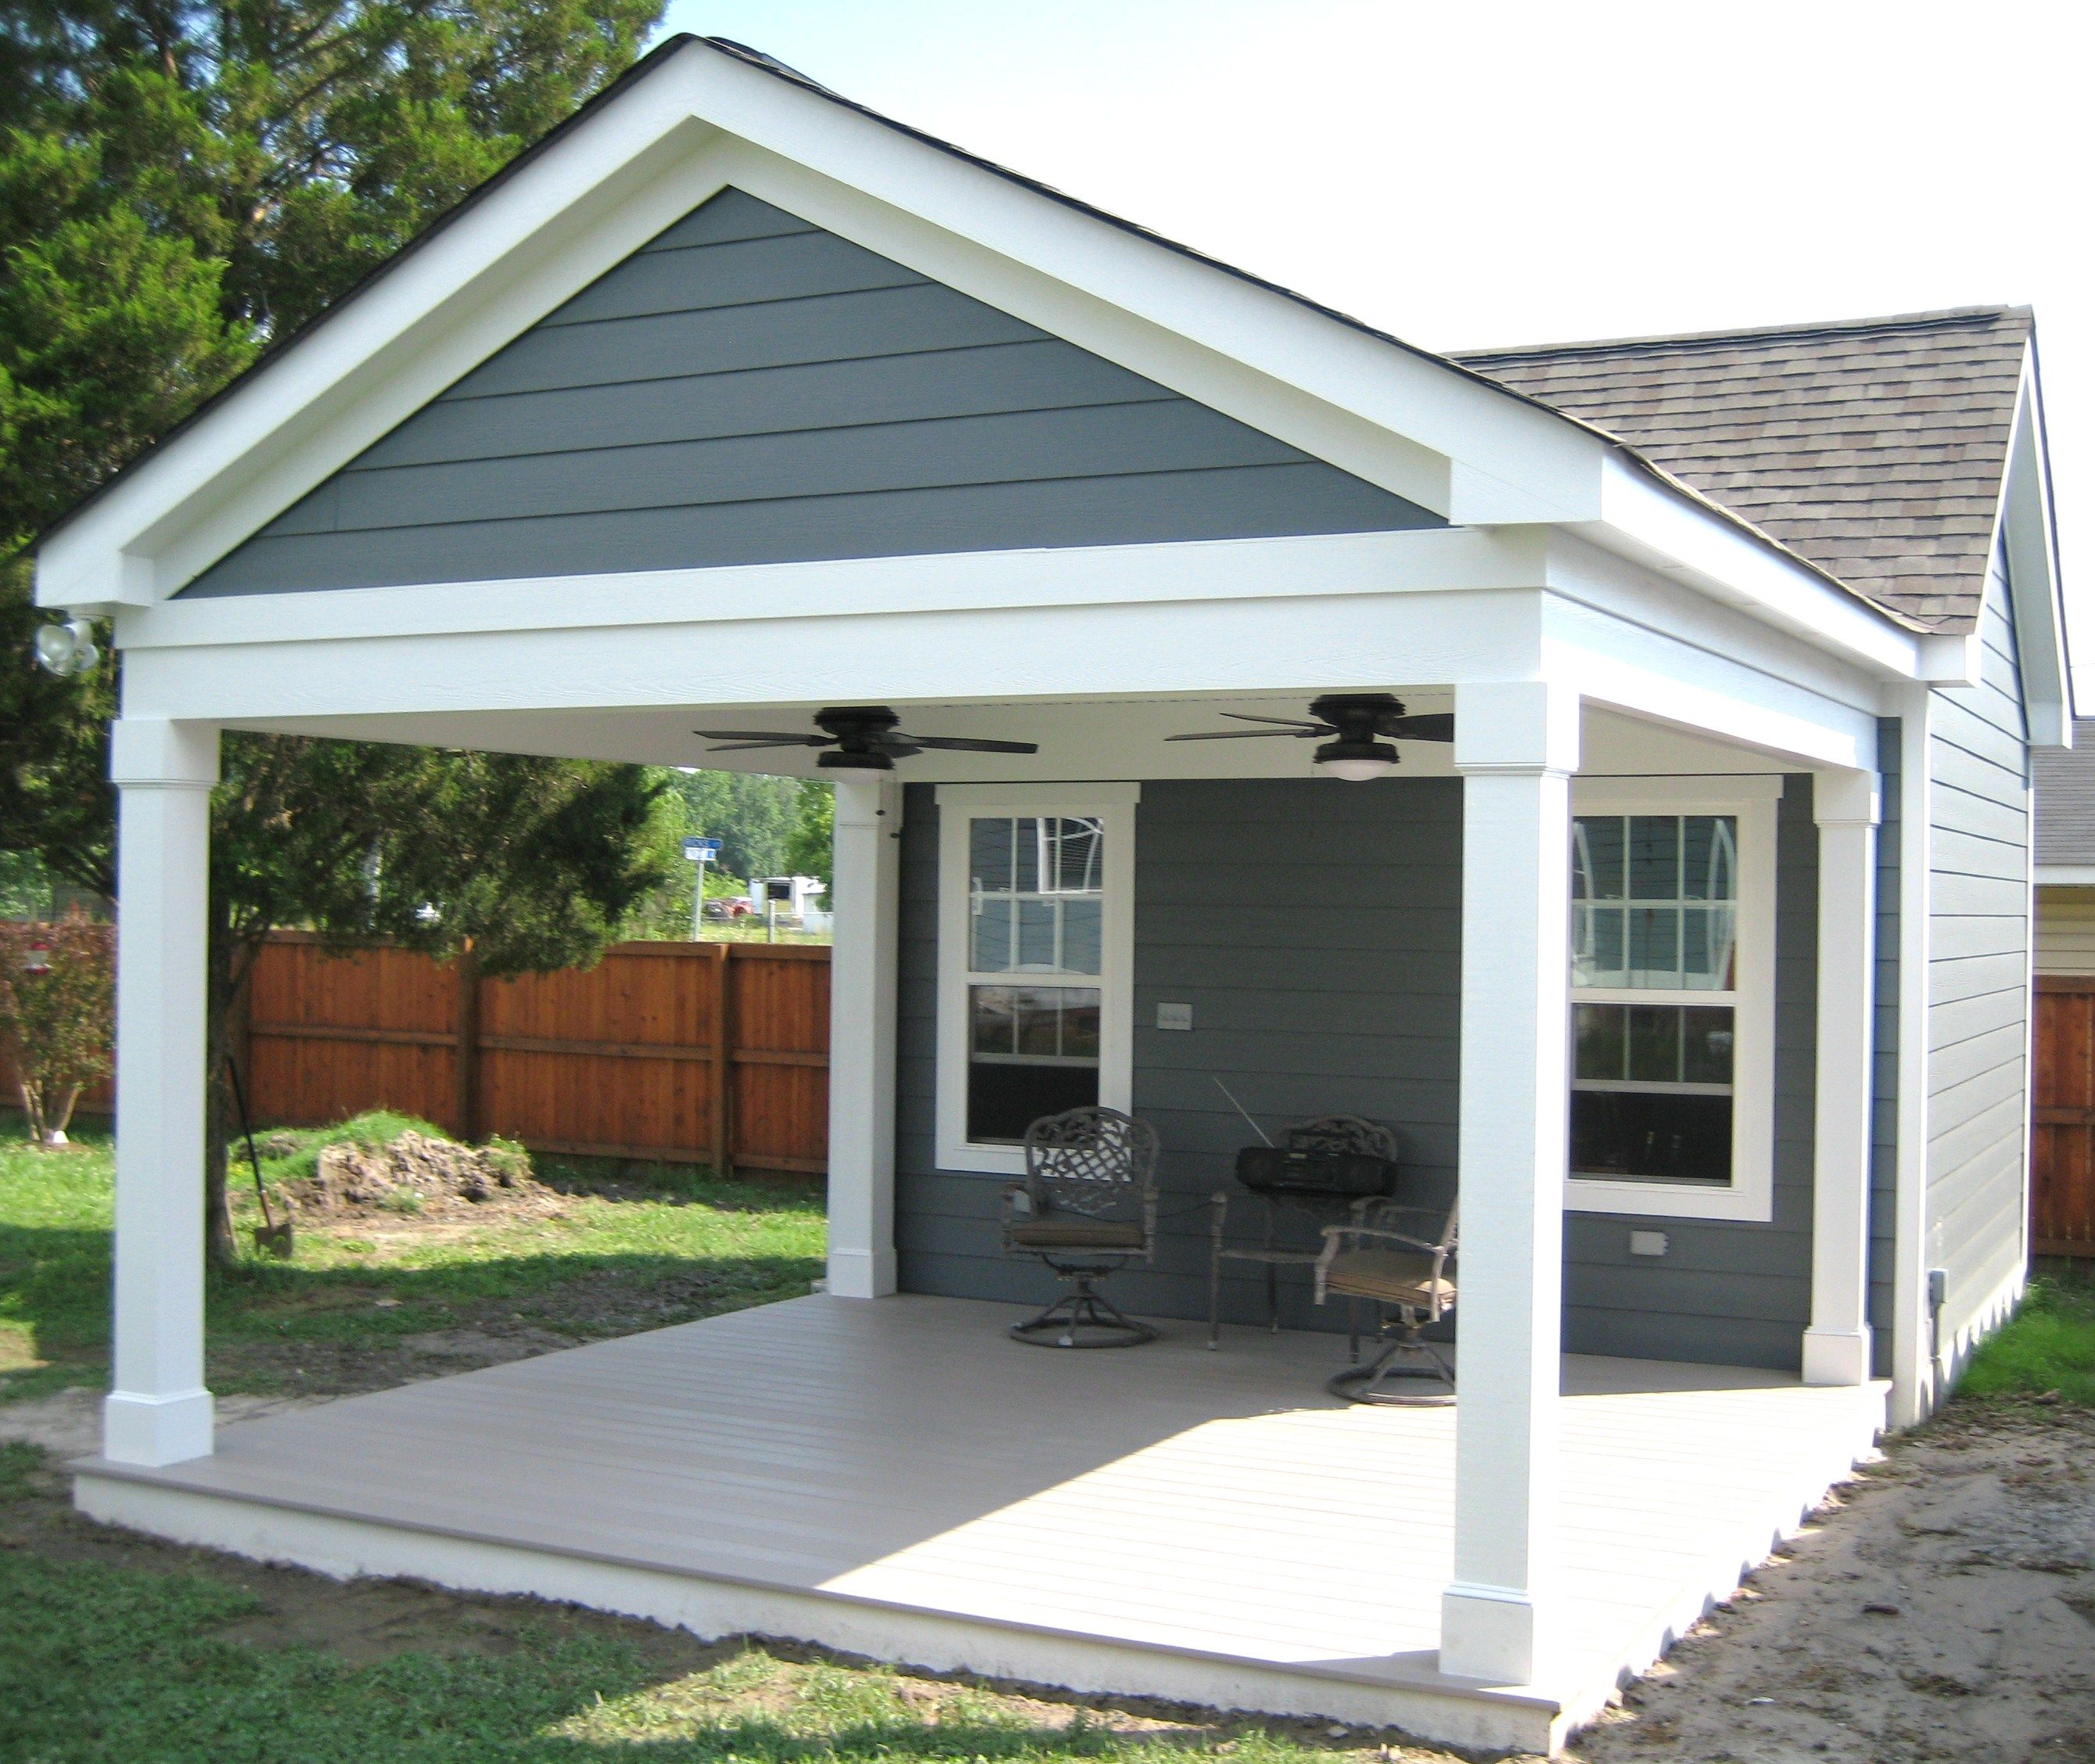 Garage with porch Outbuilding with Covered Porch Shed